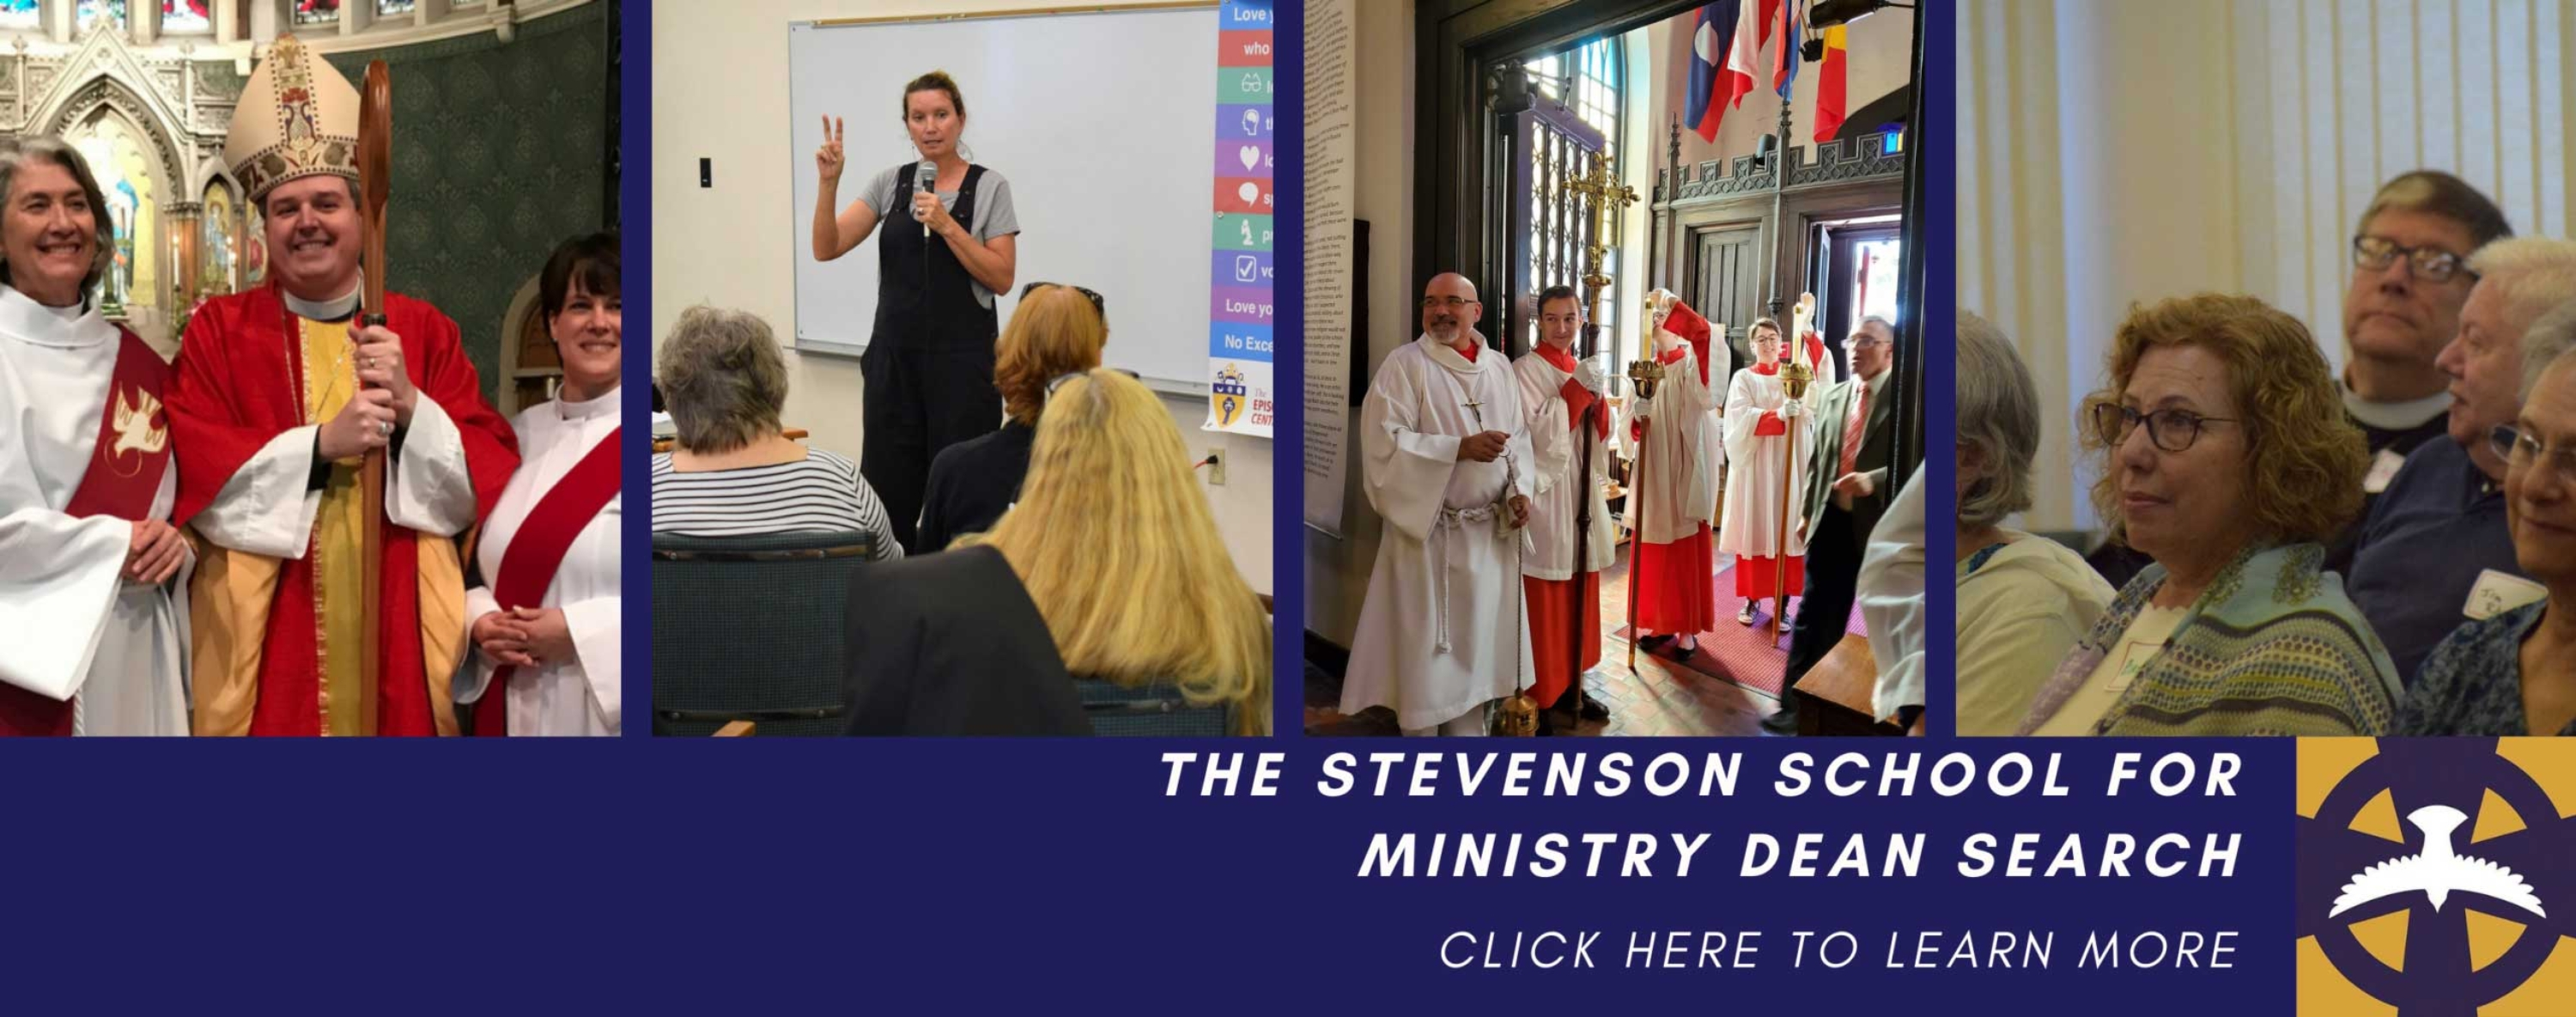 The Stevenson School for Ministry Dean Search-- Click to learn more